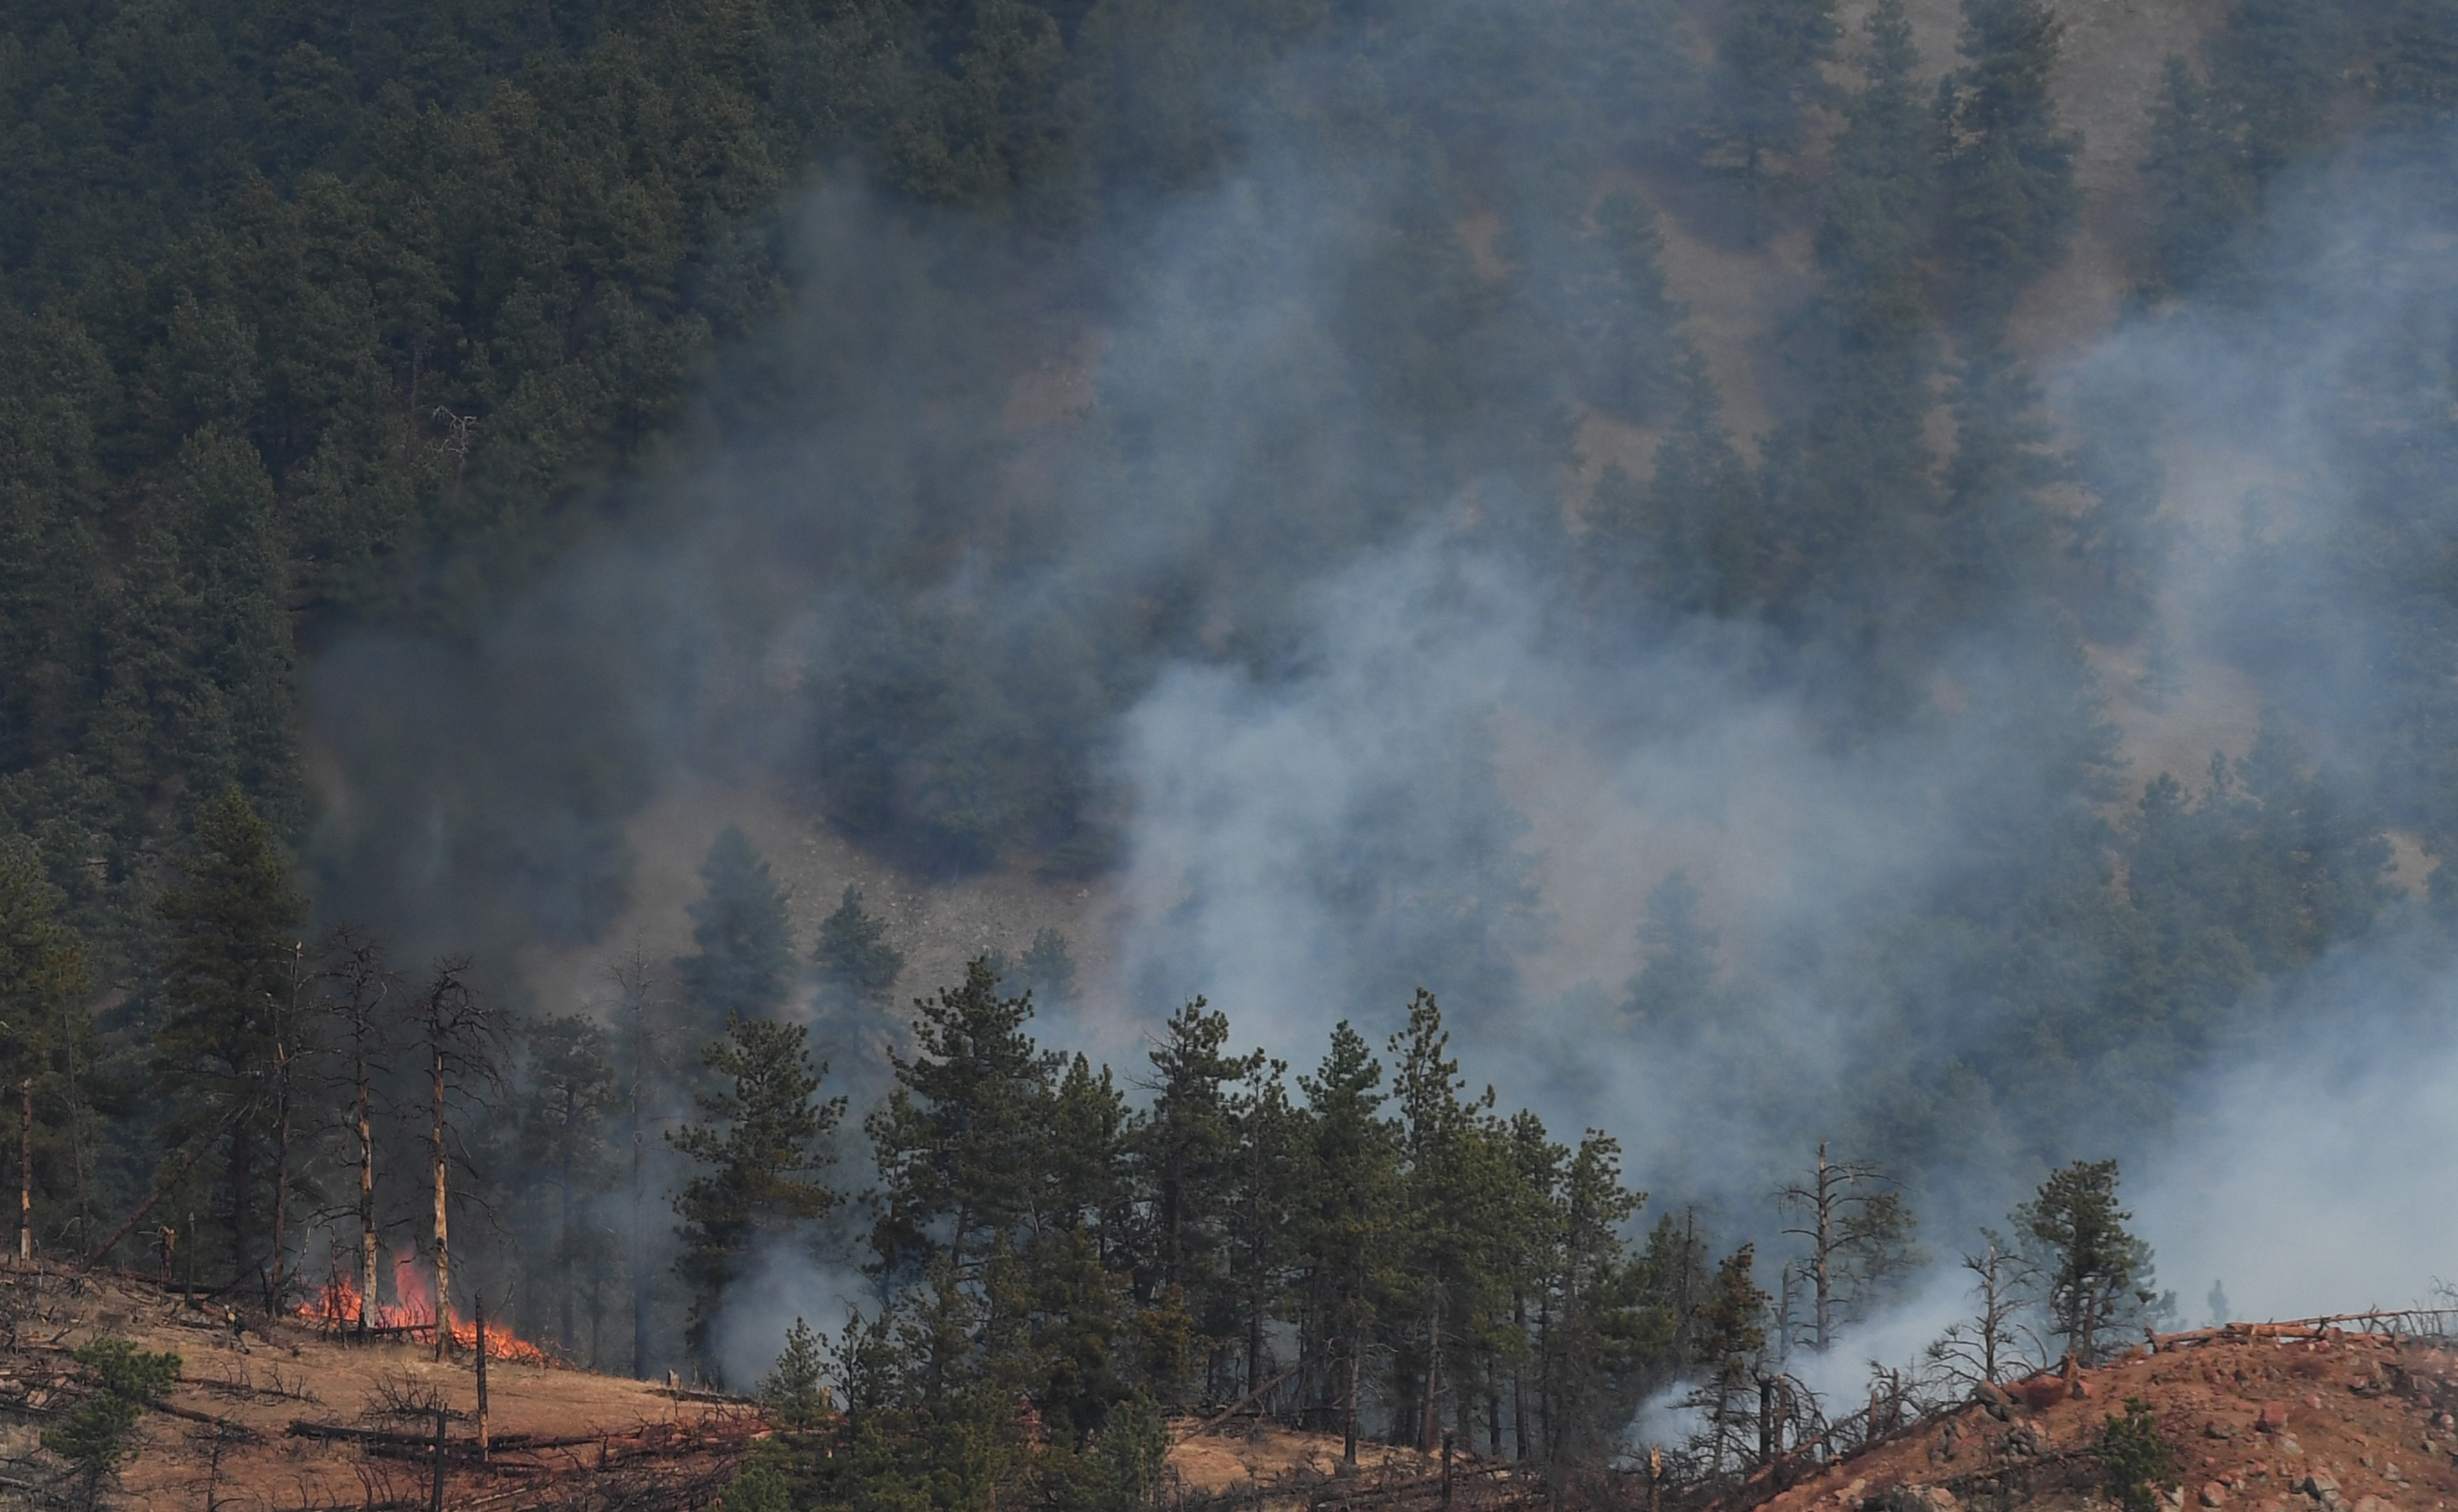 Fire crews work a wildfire in Sunshine Canyon on March 19, 2017 in Boulder, Colorado.